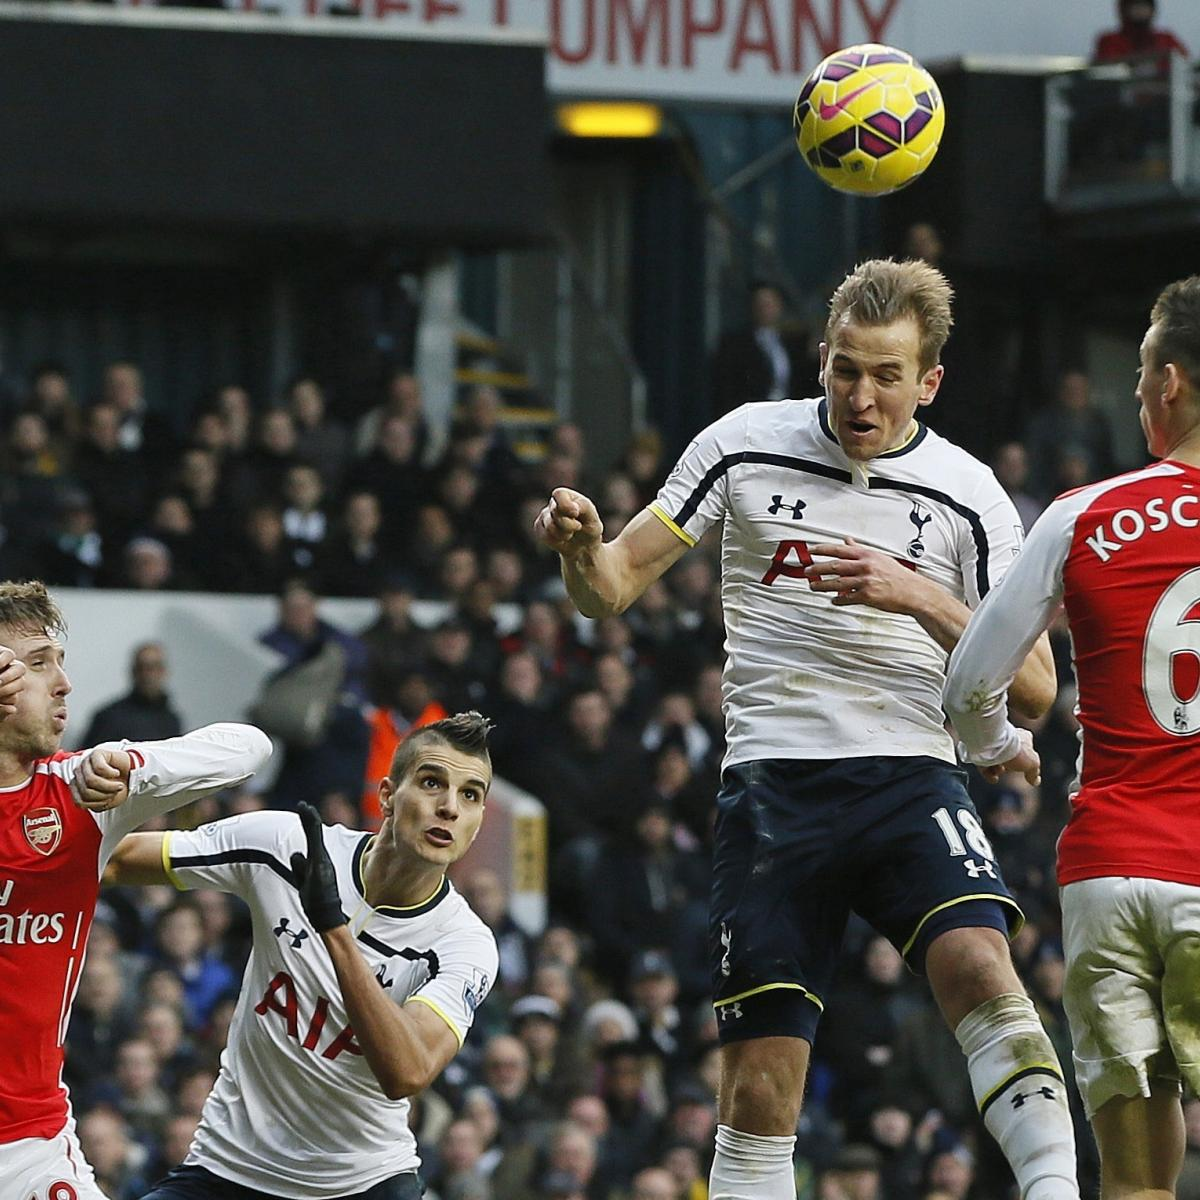 Barclays premier league table updated 2015 epl outlook - Barclays premier league ranking table ...